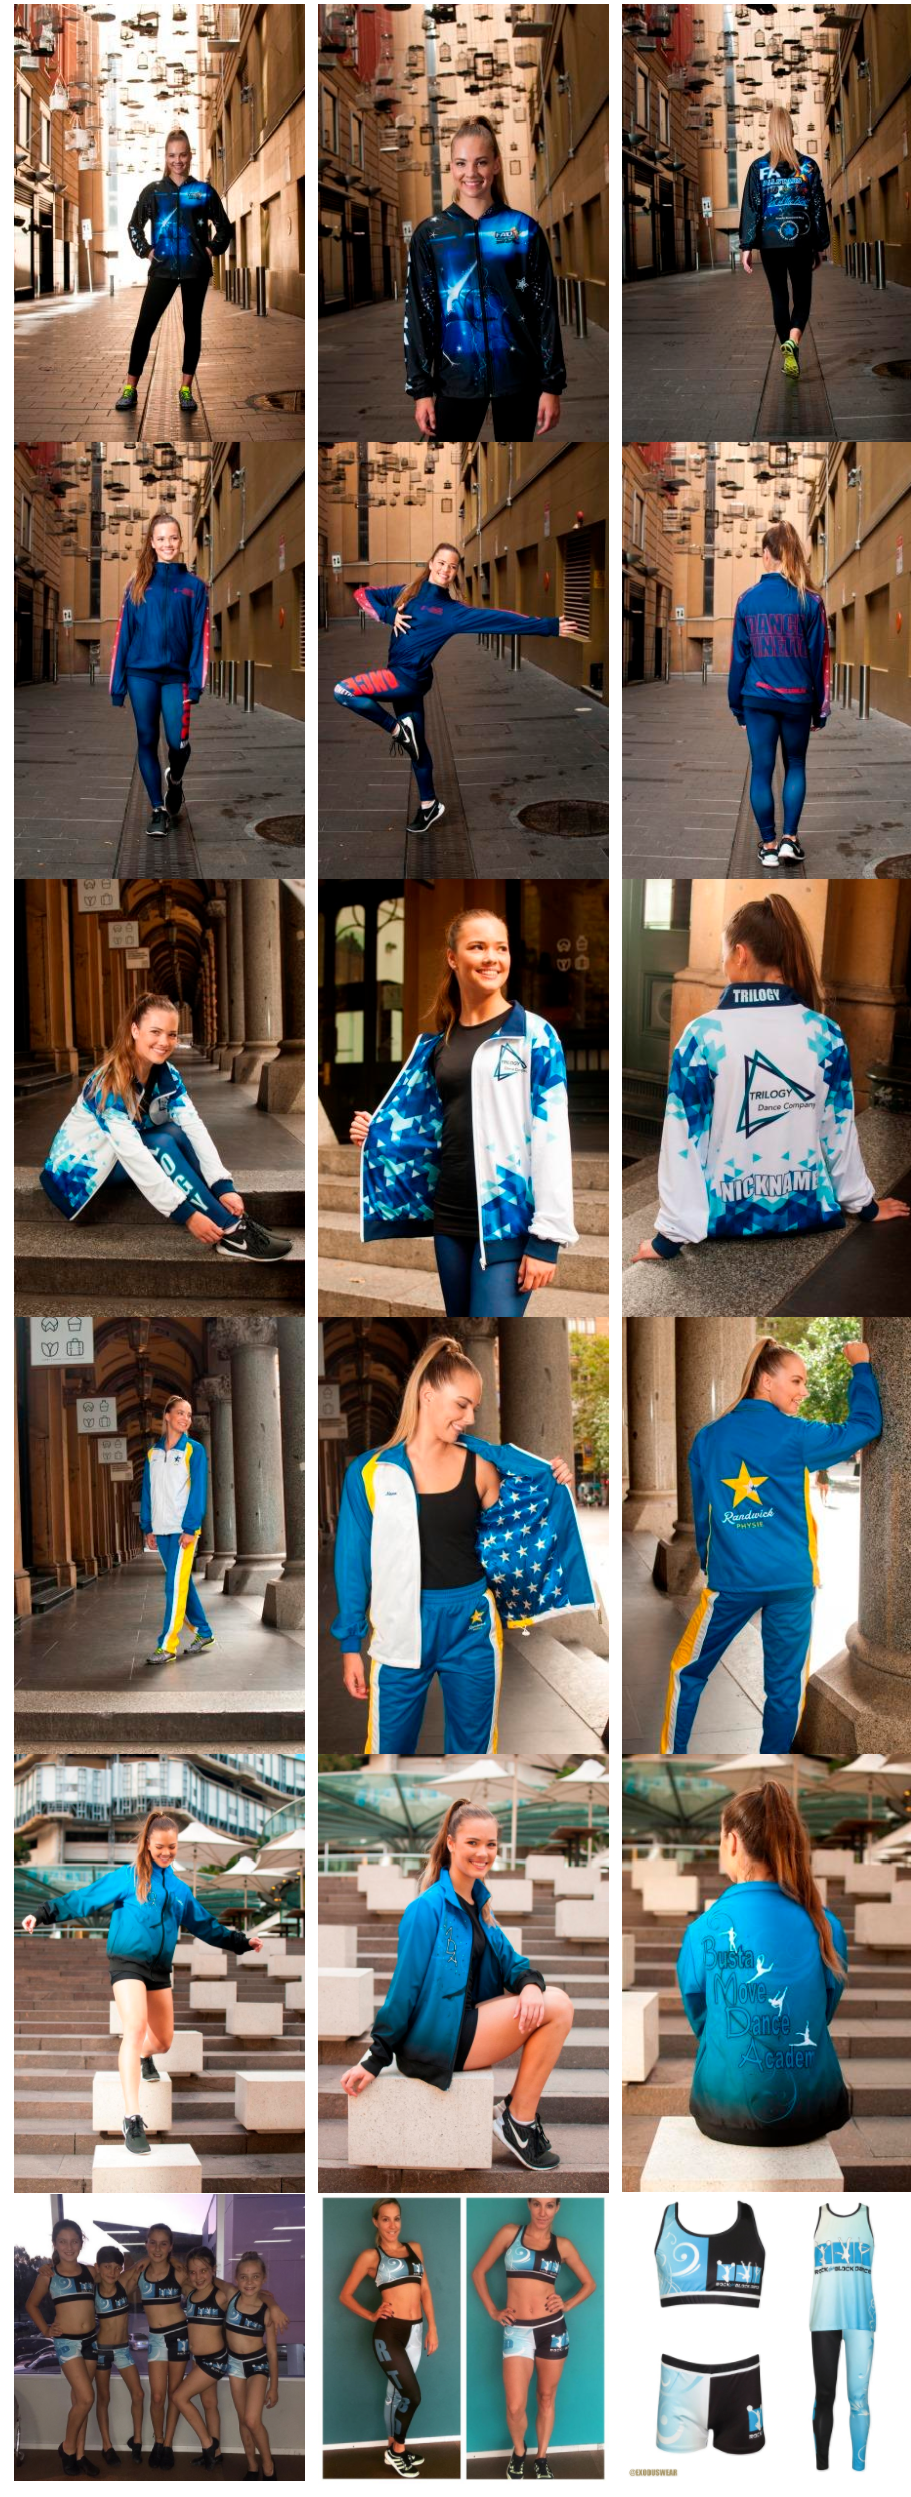 custom dance uniforms